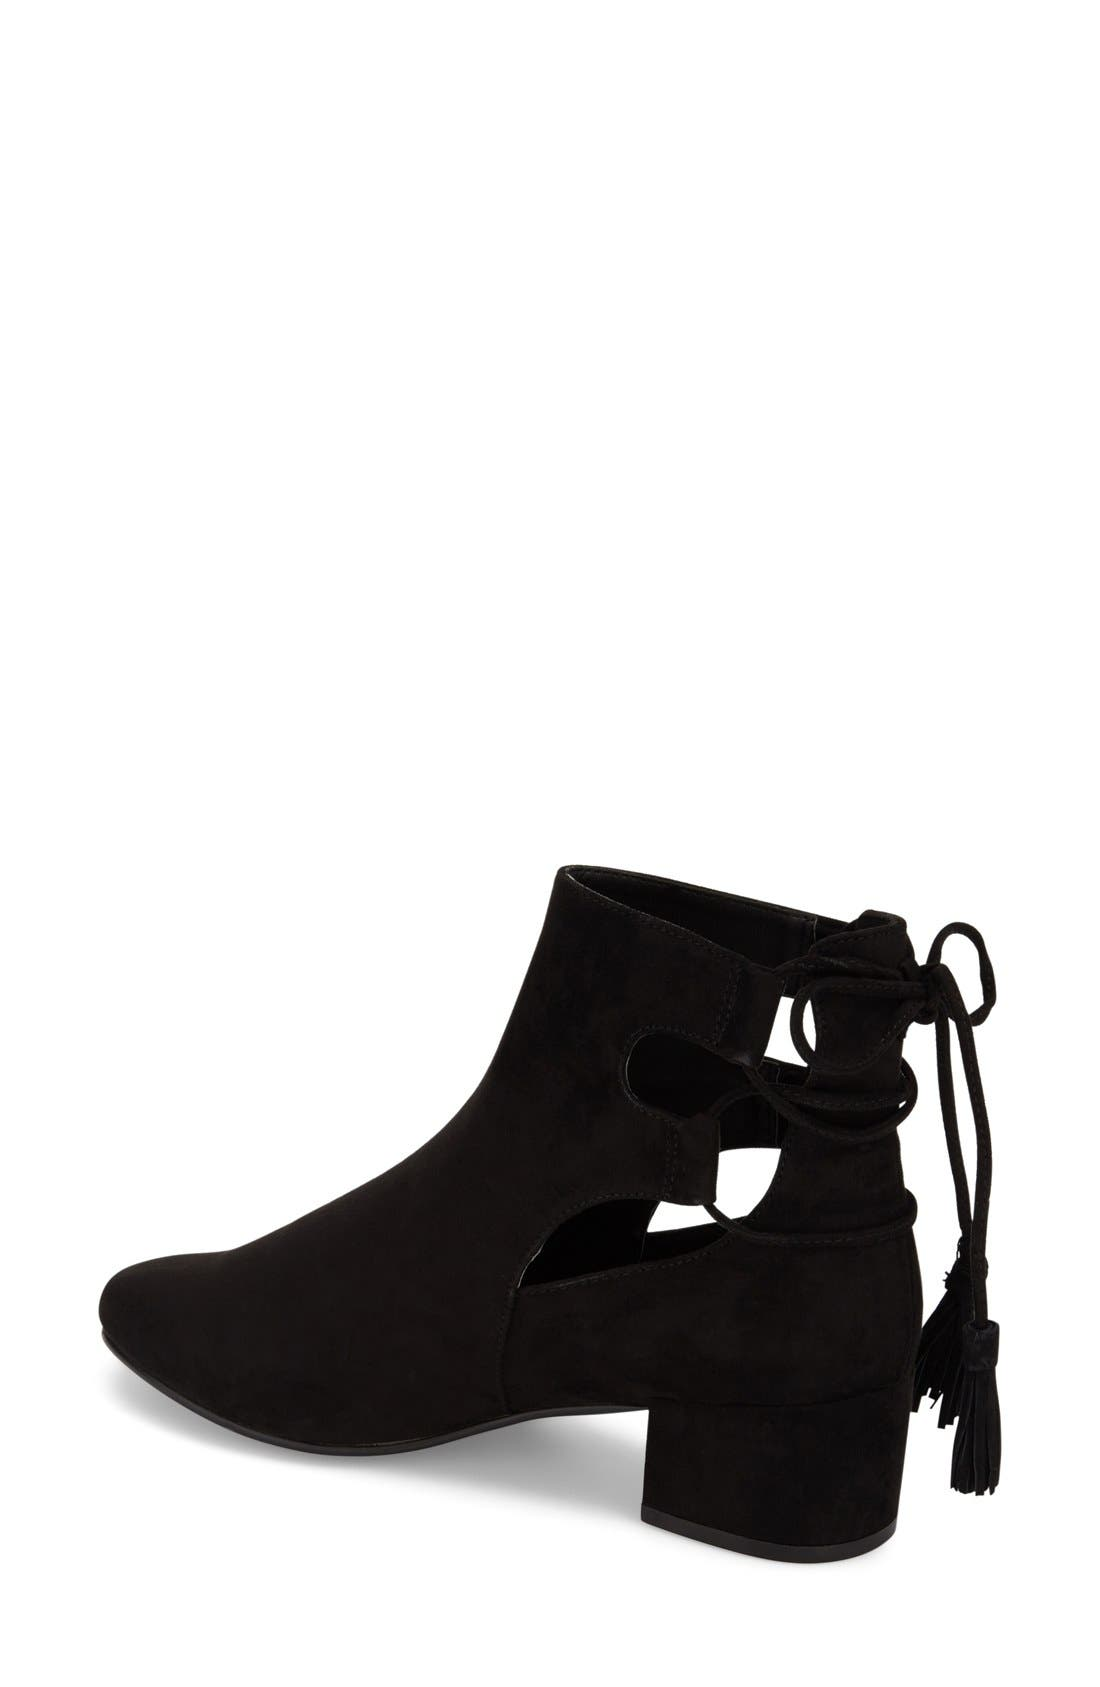 TOPSHOP, 'Kimble' Lace-Up Suede Boot, Alternate thumbnail 4, color, 001